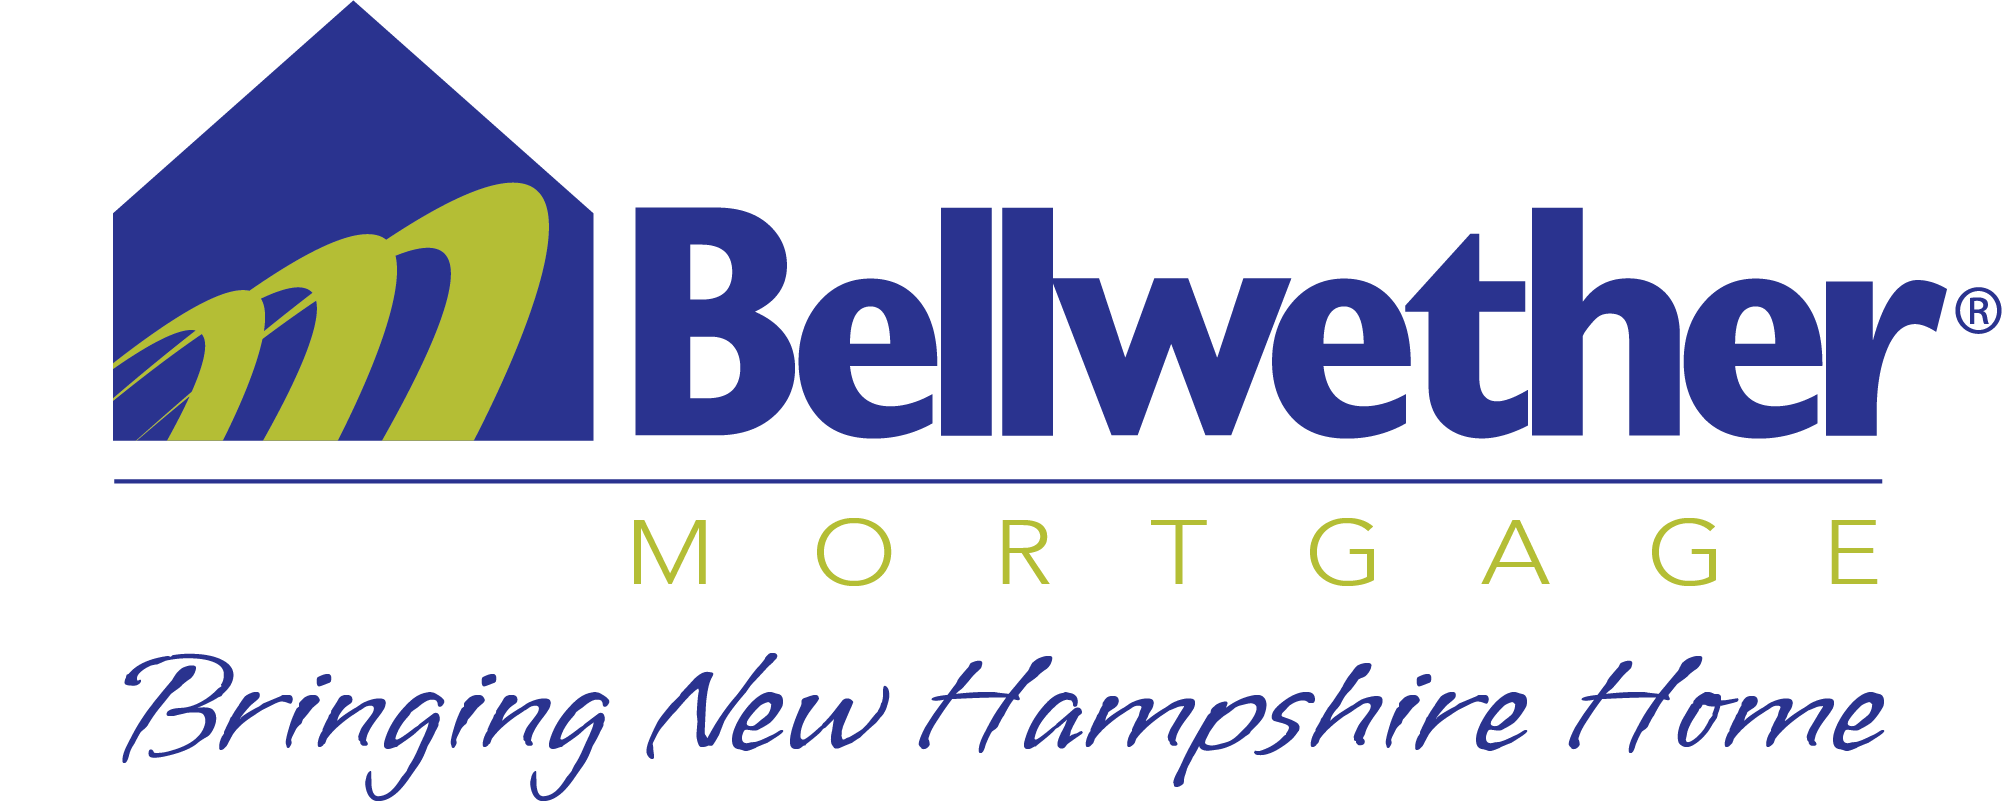 Mortgages - Mortgage Calculator - Bellwether Community Credit Union